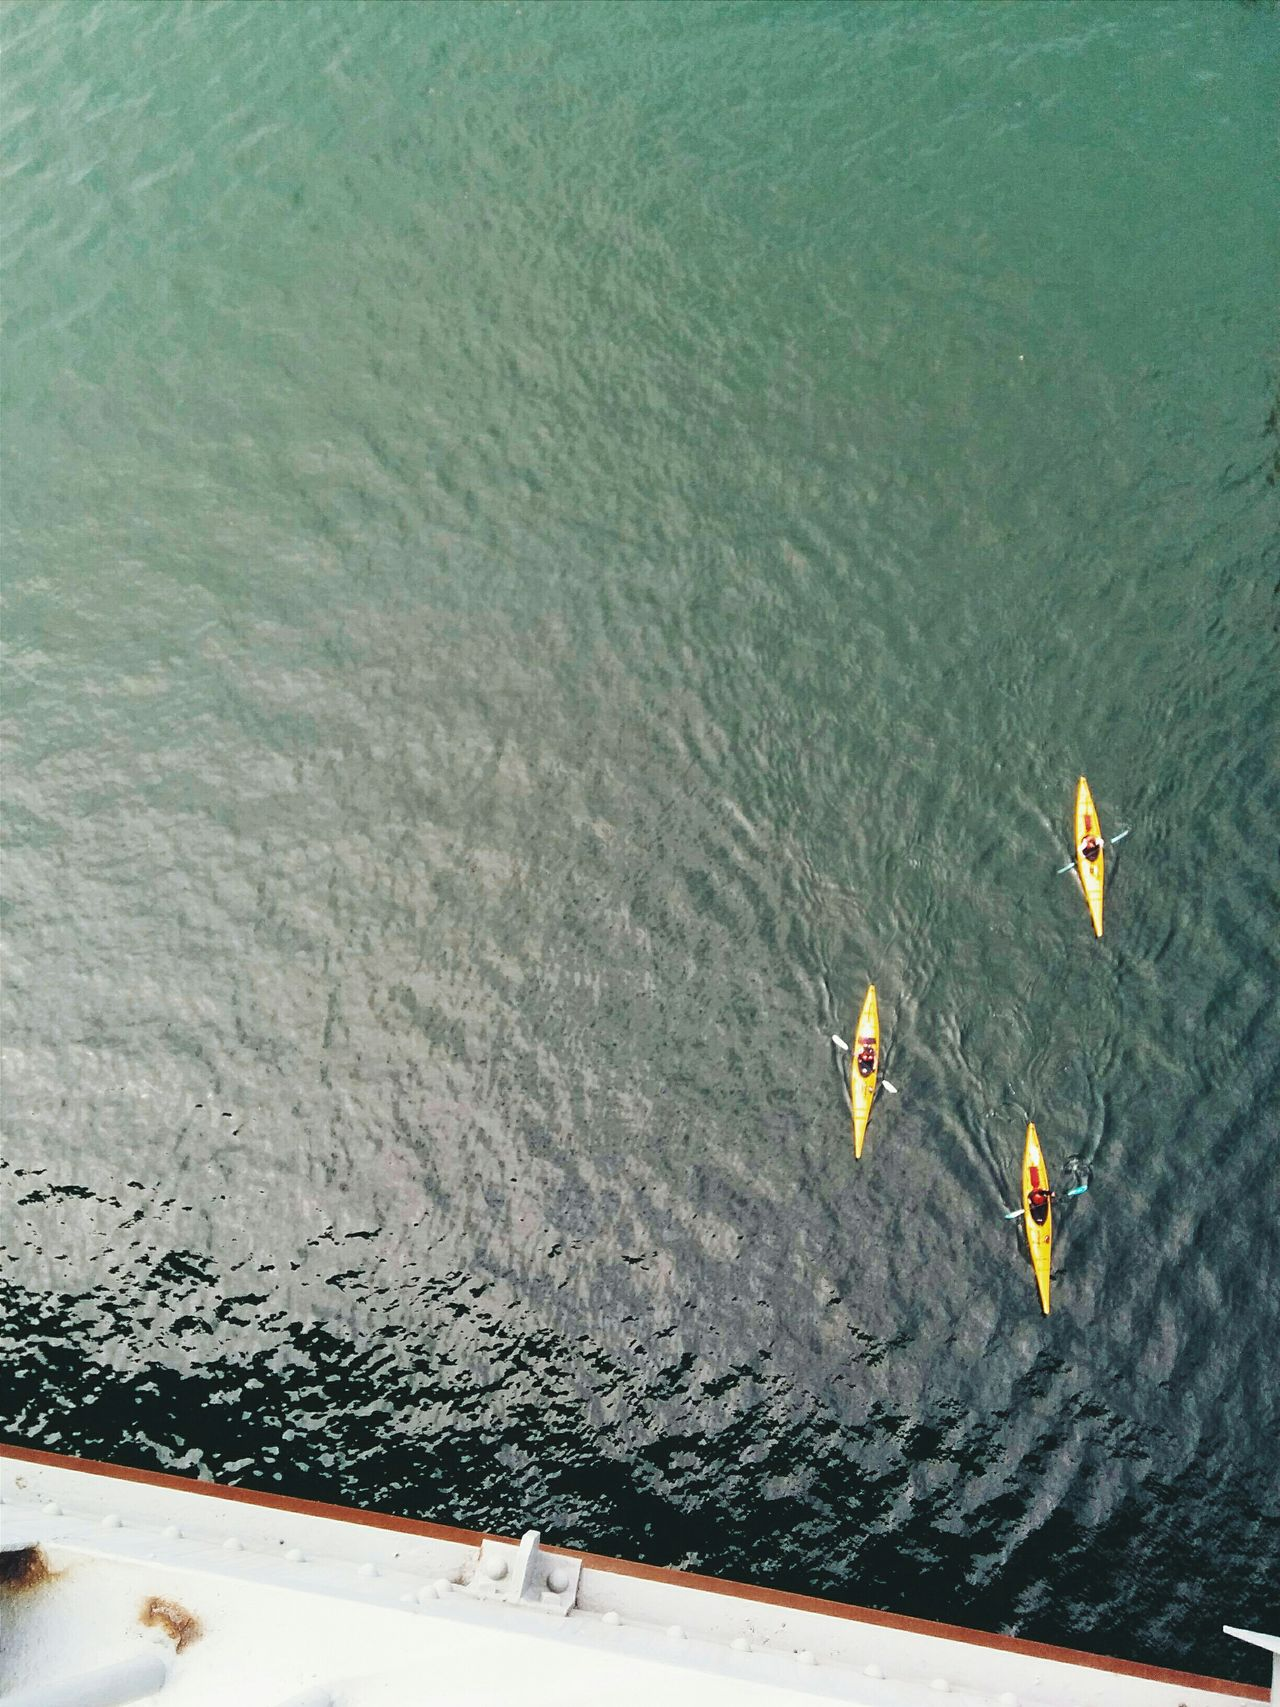 High angle view of canoes in calm water